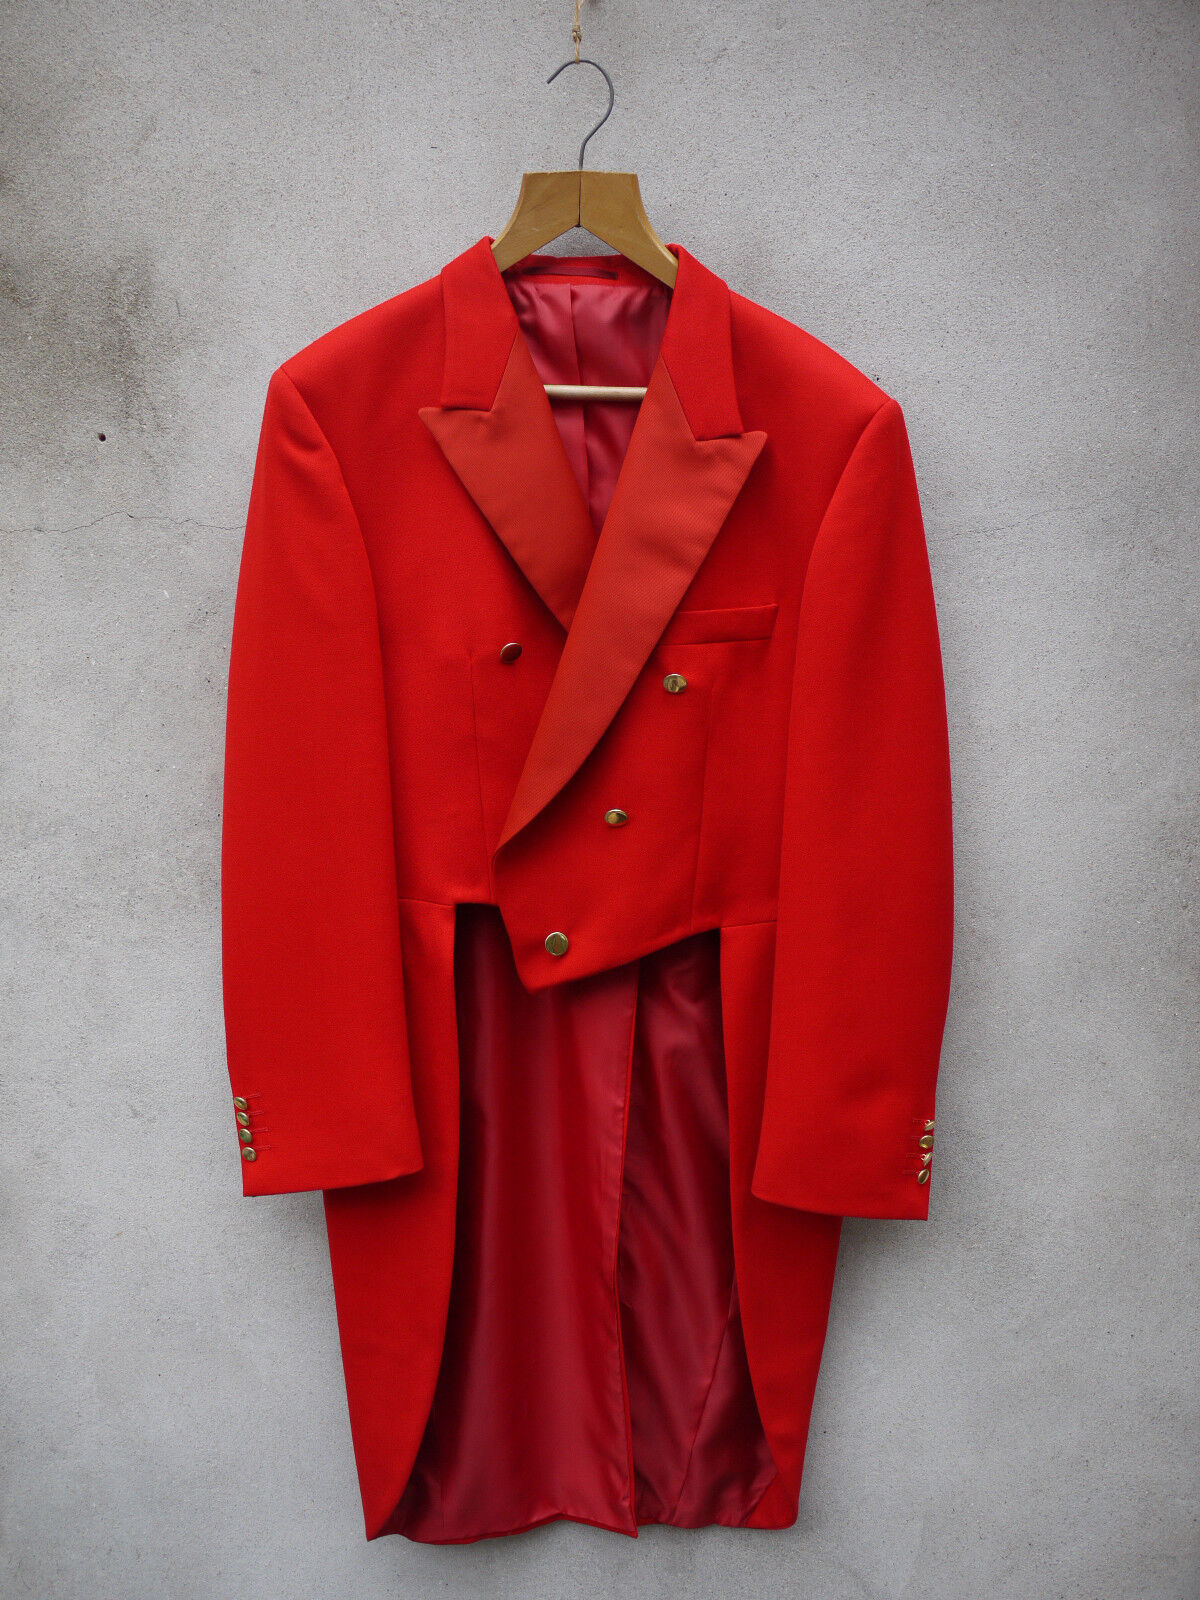 RED TOASTMASTER TAILCOAT 46